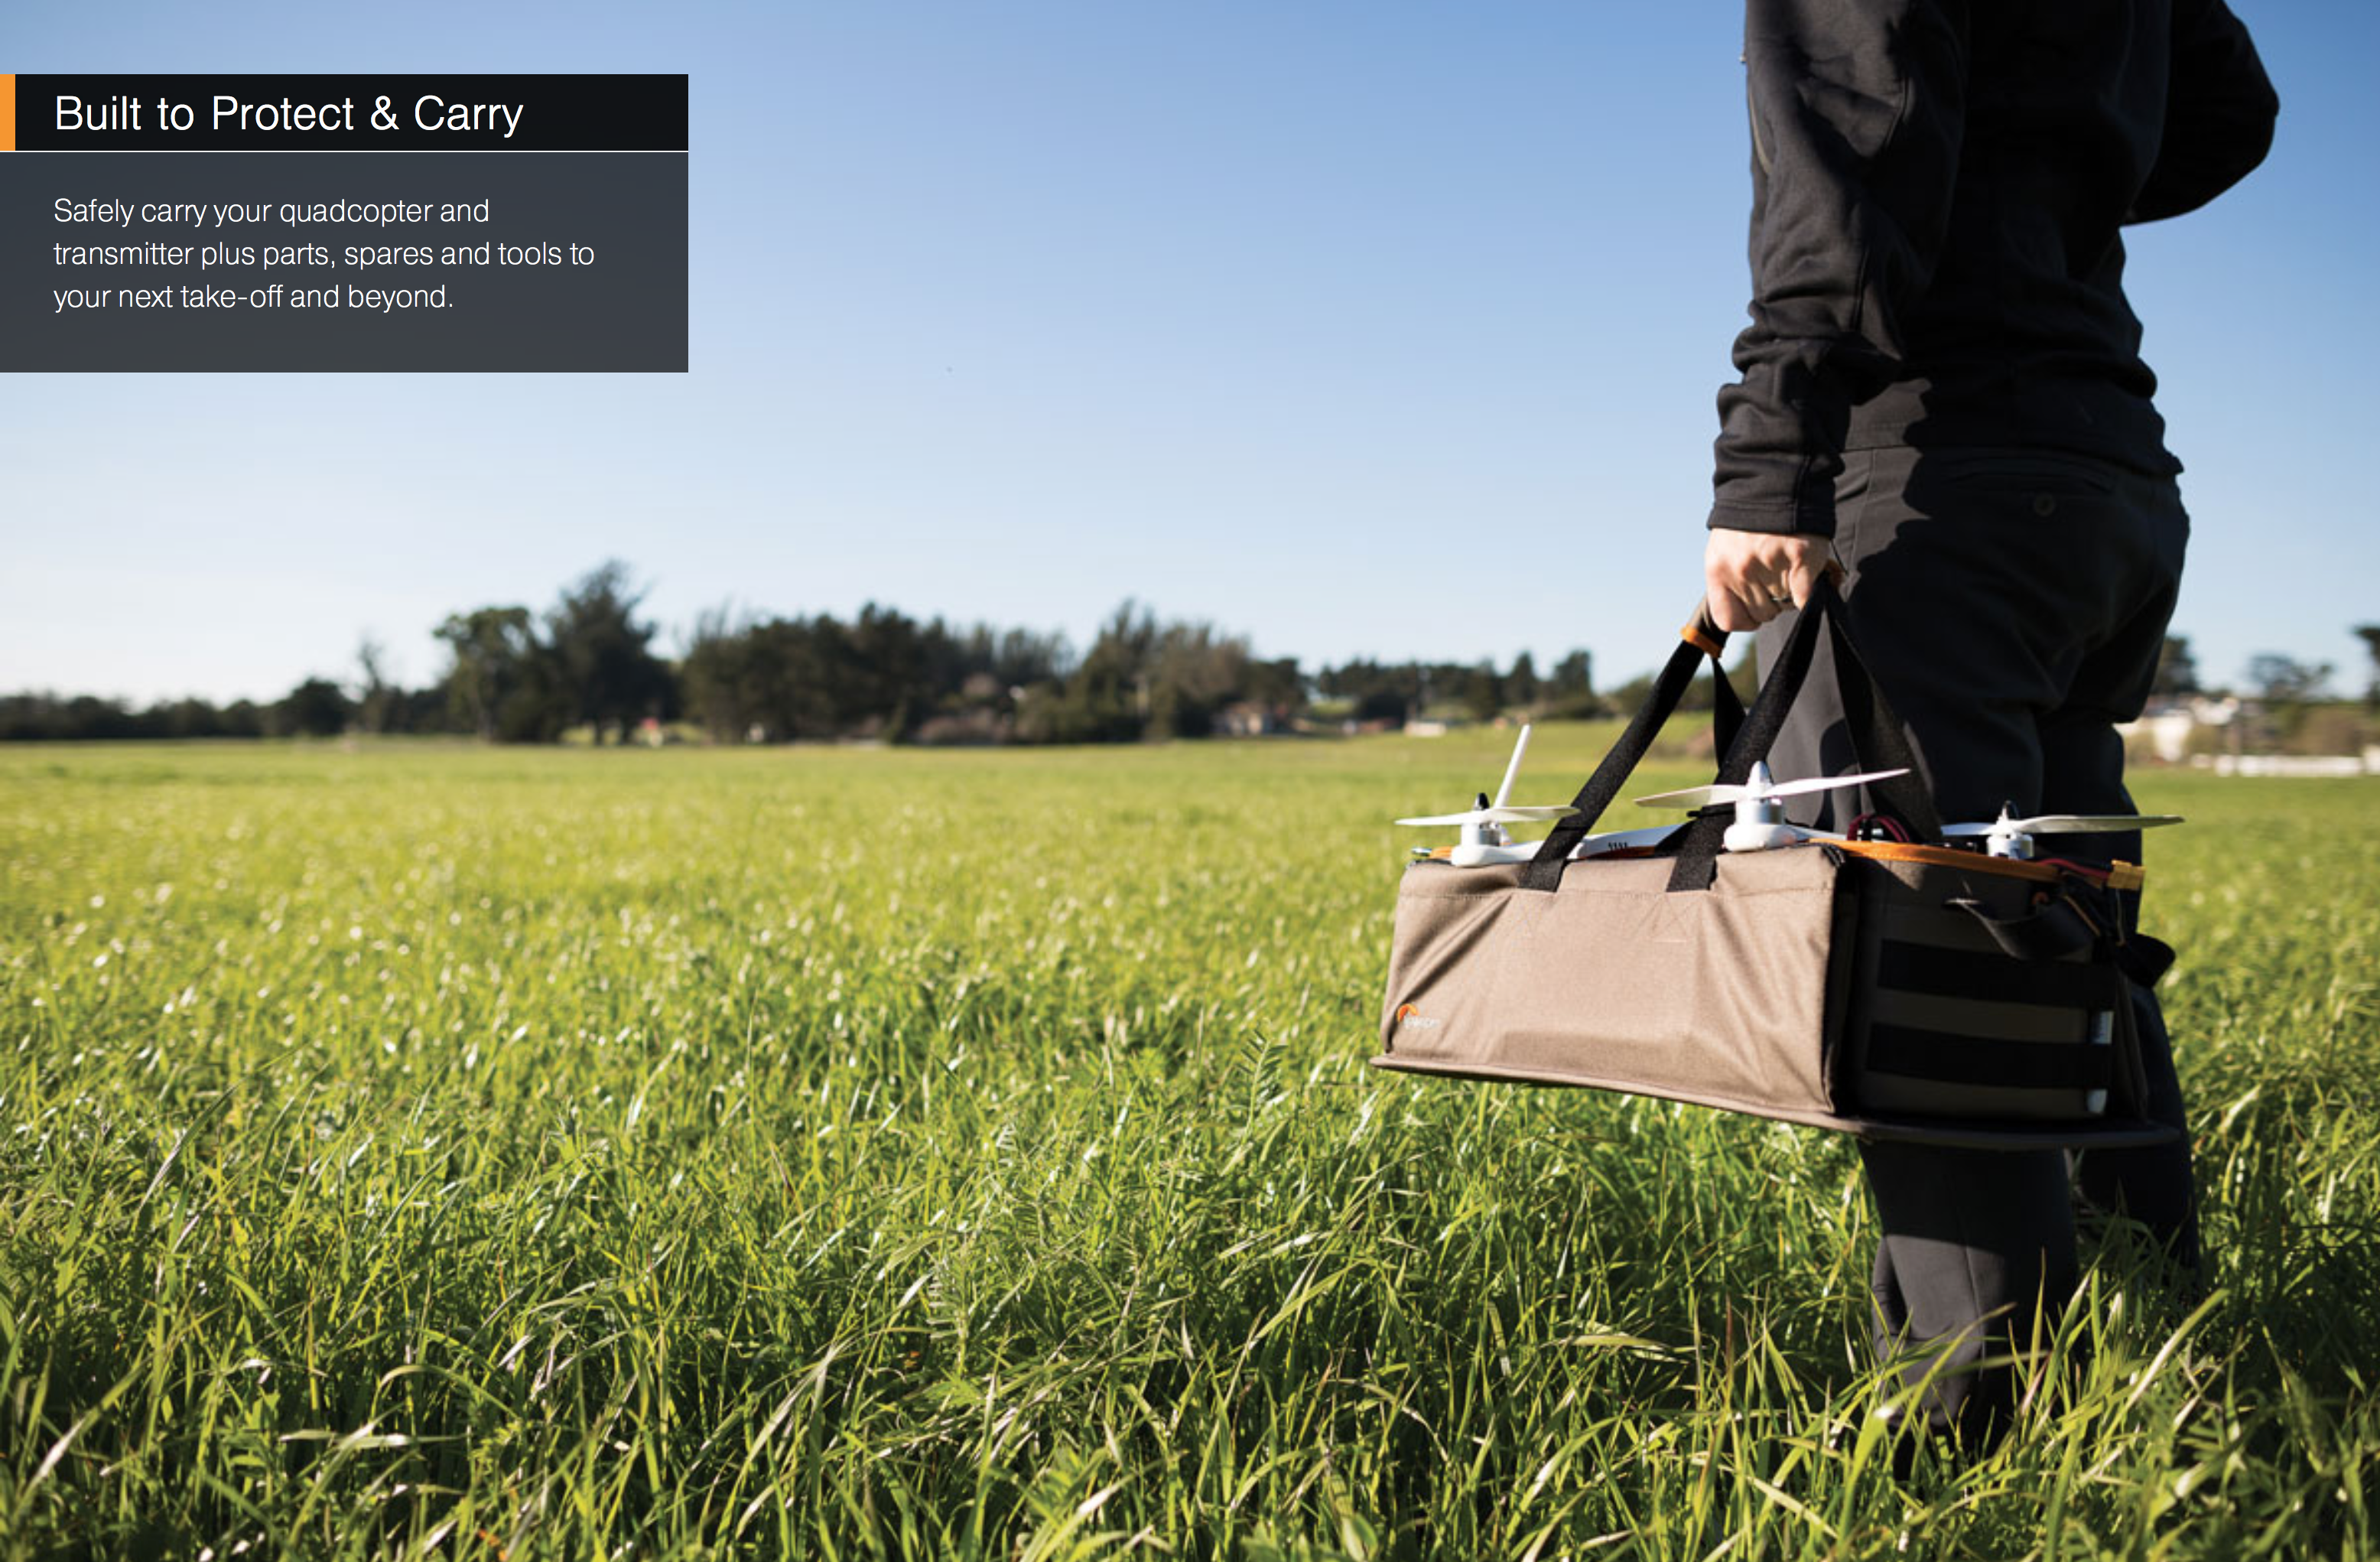 Simply fold up the sidewalls, close the security strap and handle, and you are ready to carry your drone kit to your location.